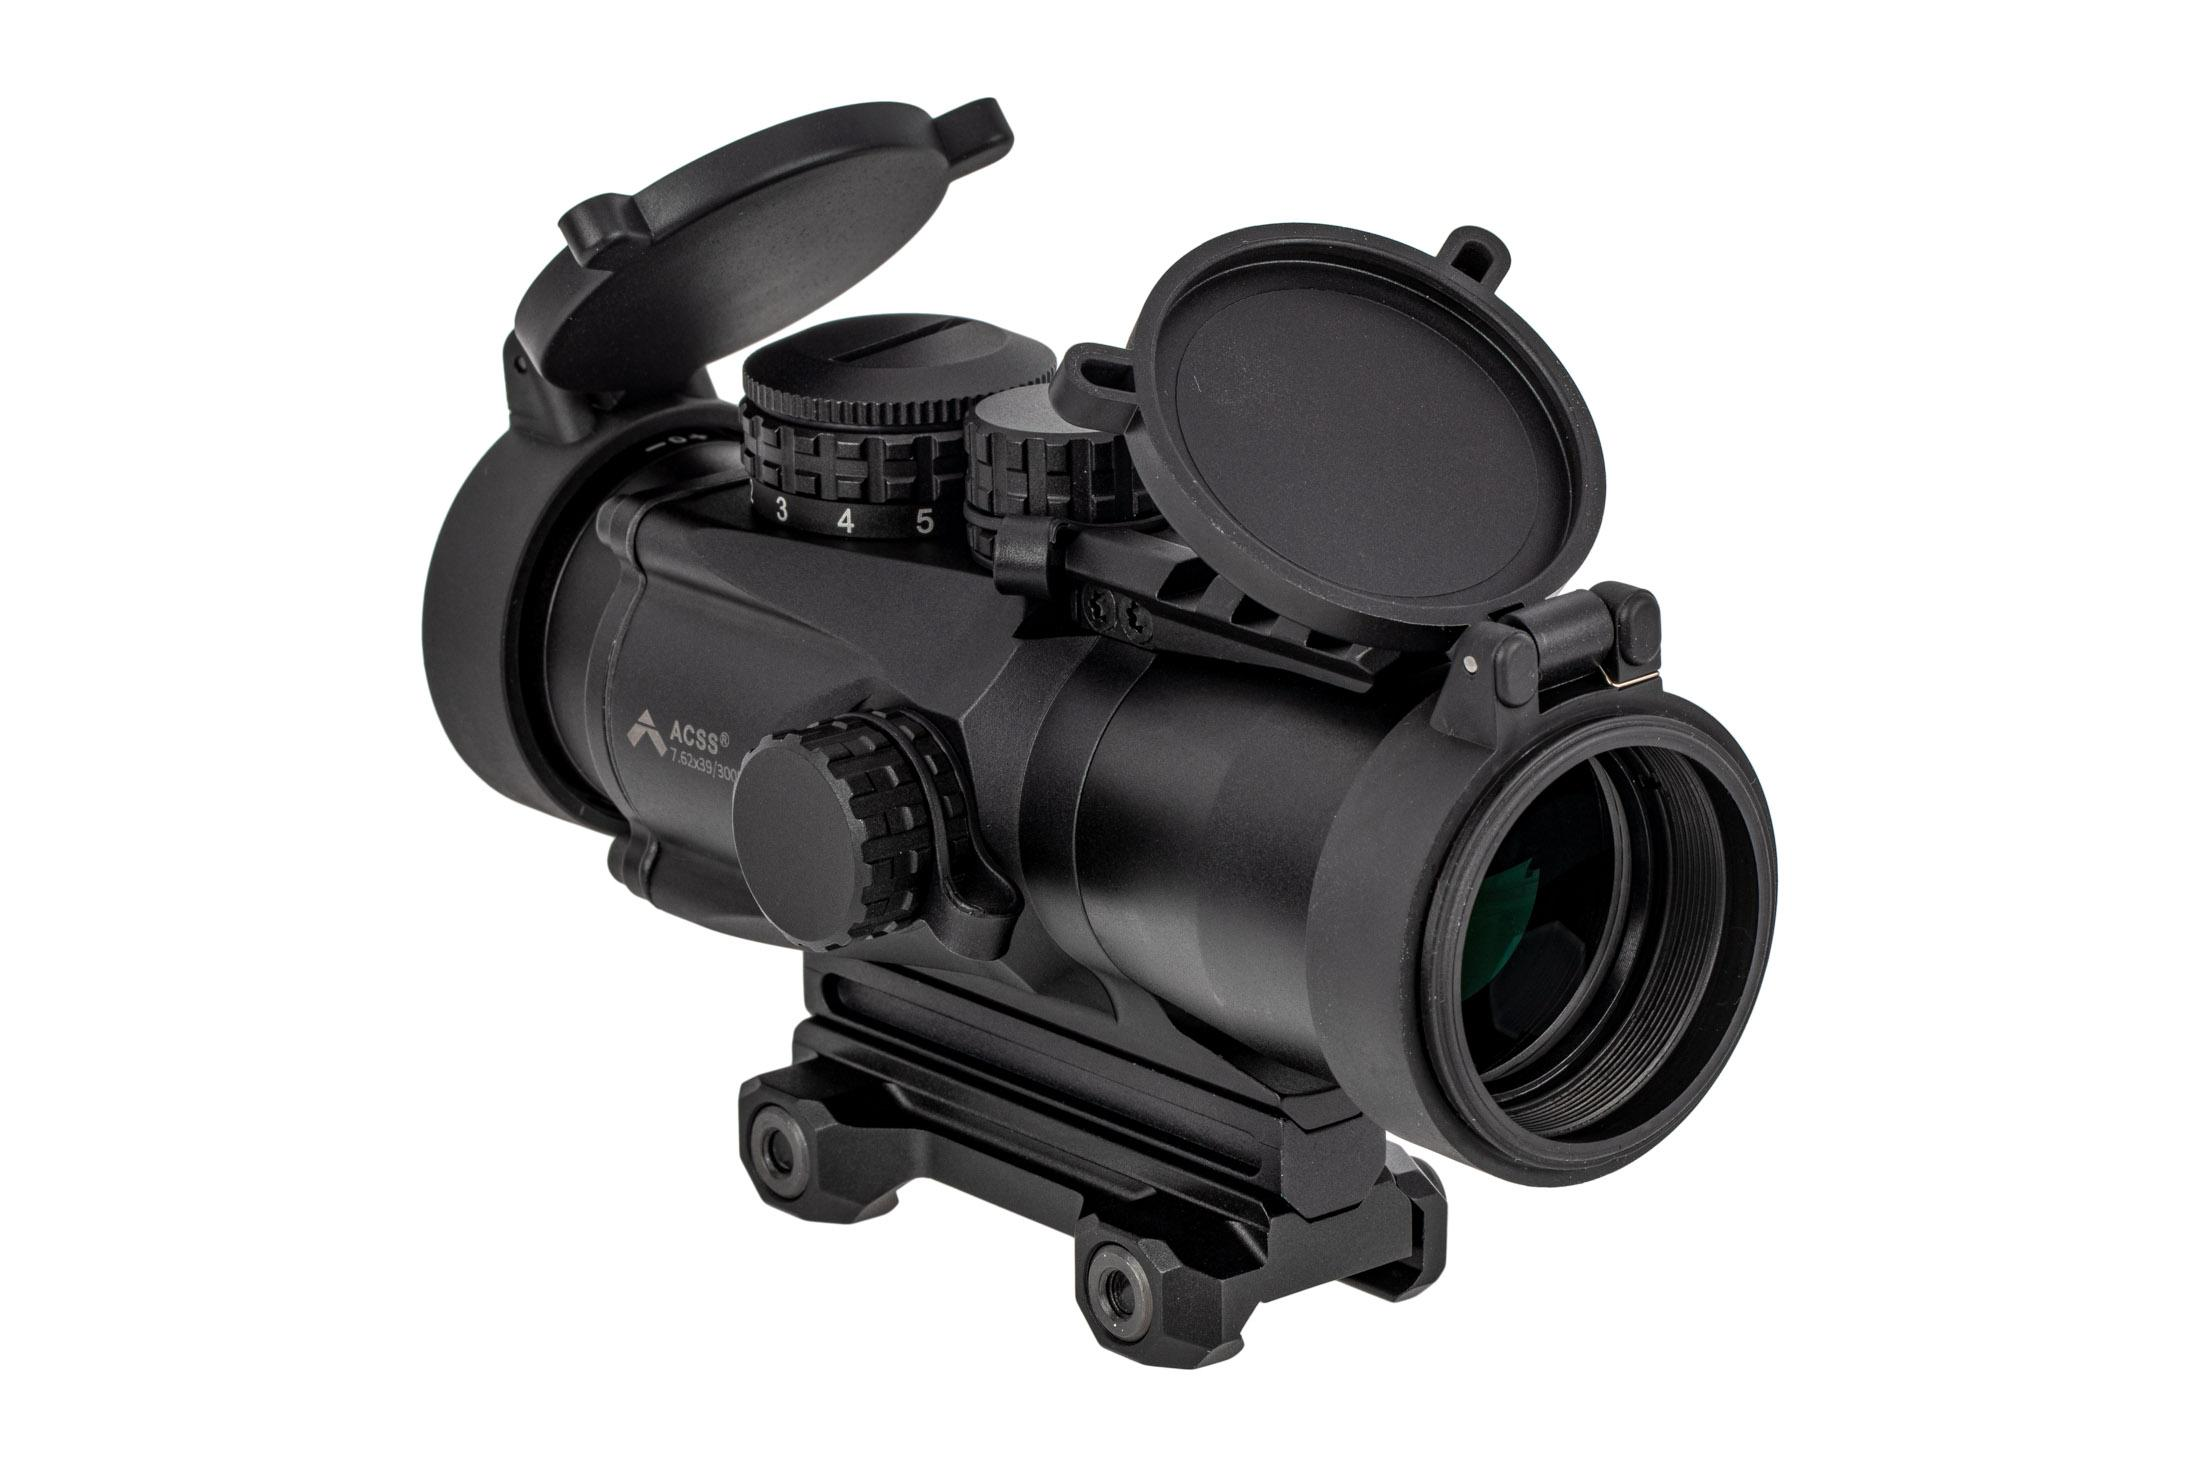 Primary Arms SLx 3x32mm Gen III Prism Scope - ACSS-CQB-300BLK/7.62x39 Reticle